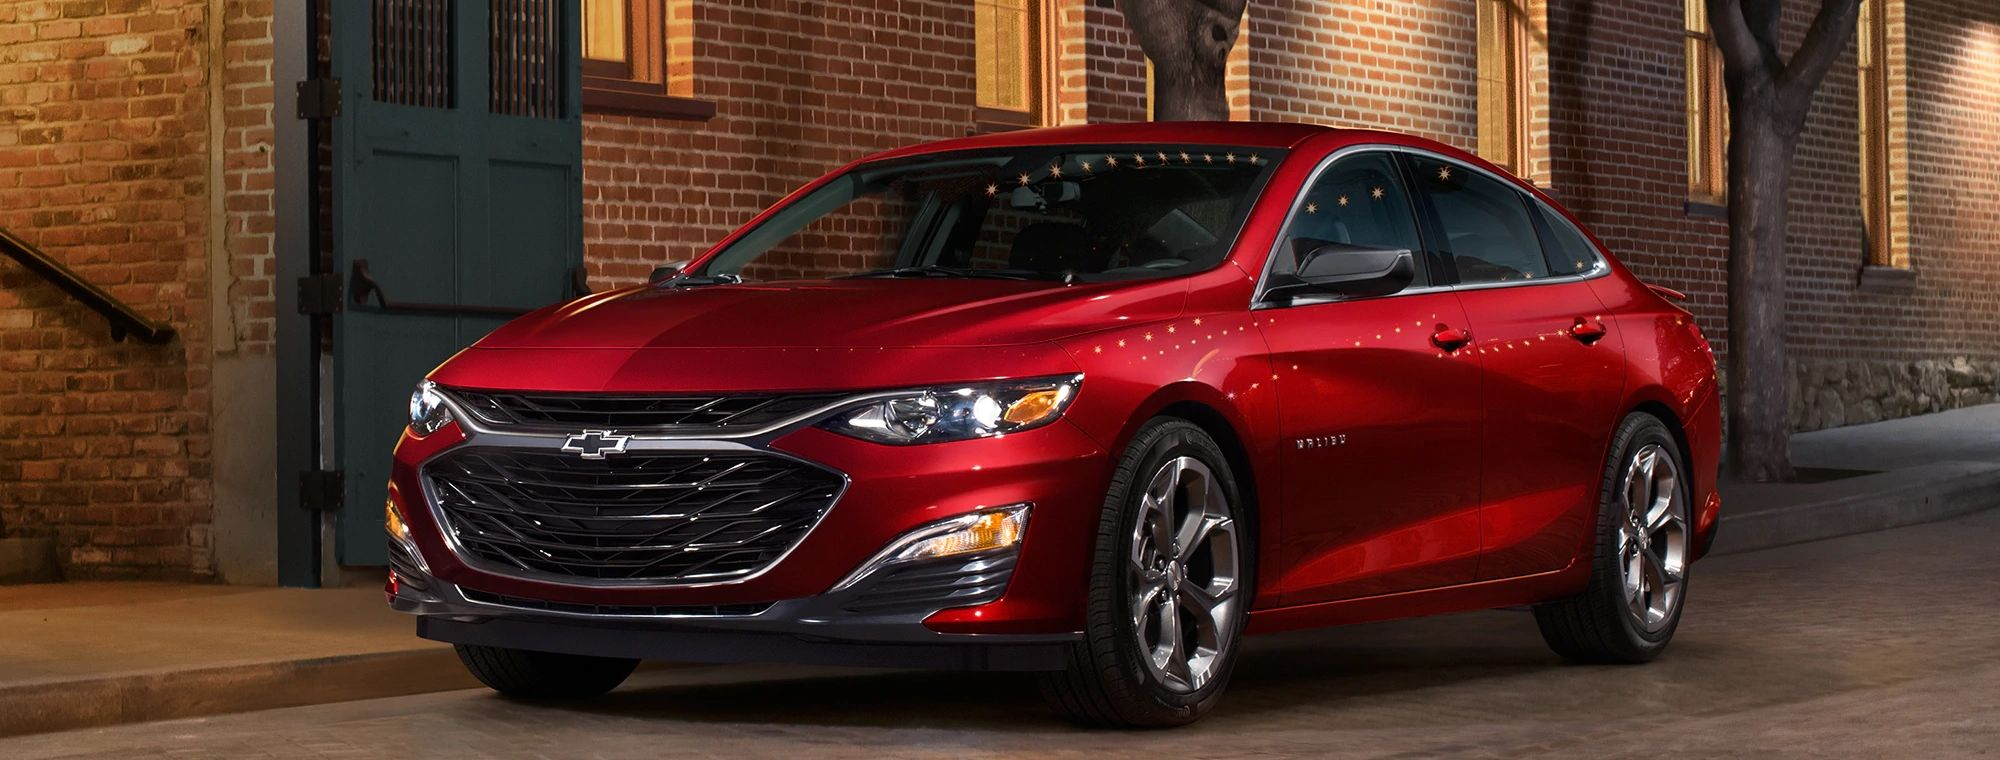 2019 Chevrolet Malibu Financing near Burbank, IL